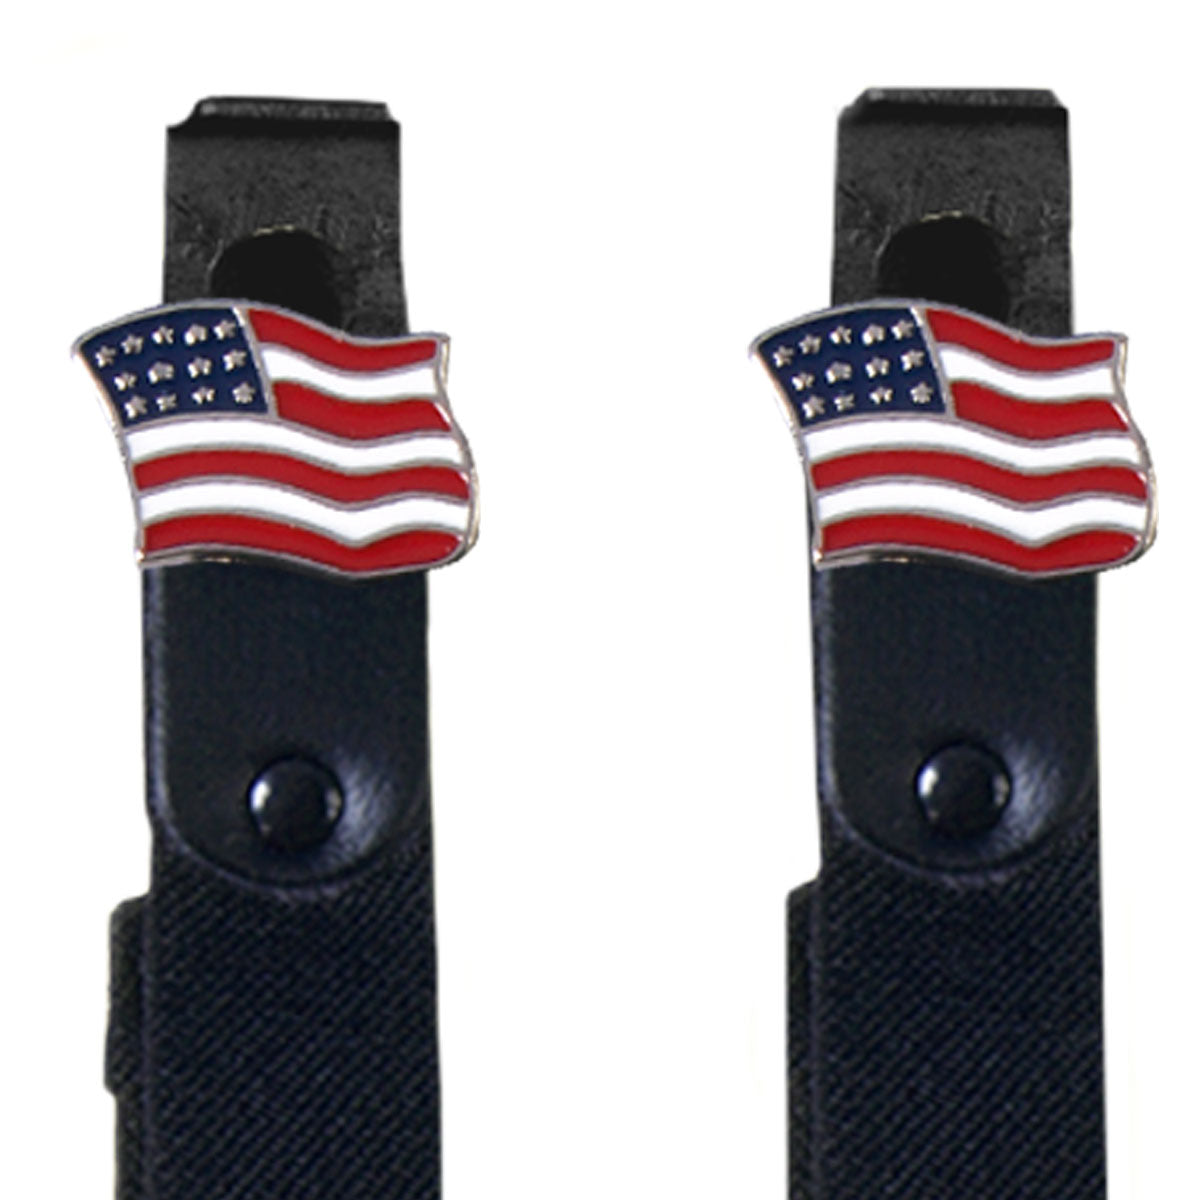 Hot Leathers American Flag Motorcycle Riding Pant Clips